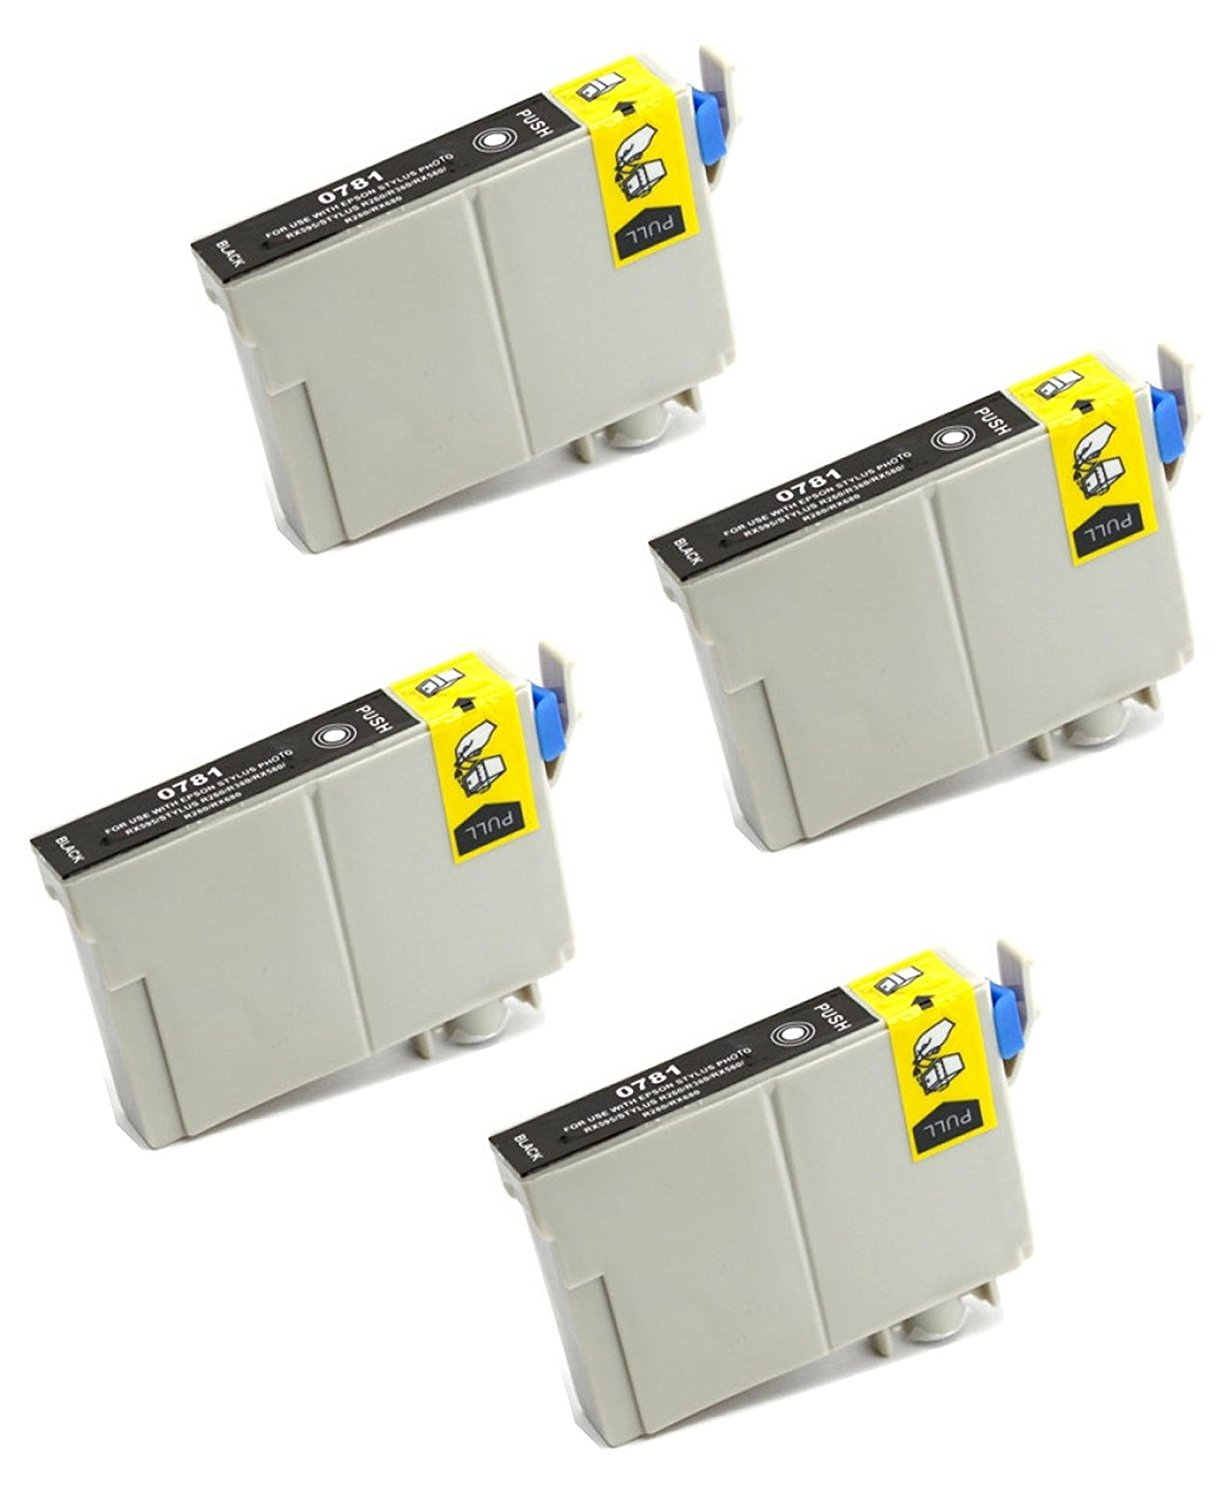 4 Pack Remanufactured Inkjet Cartridges for Epson T078 #78 T078120 Compatible With Epson Artisan 50, Stylus Photo R260, Stylus Photo R280, Stylus Photo R380, Stylus Photo RX580, Stylus Photo RX595, Stylus Photo RX680 (4 Black) 4PK by Aria Supplies ®